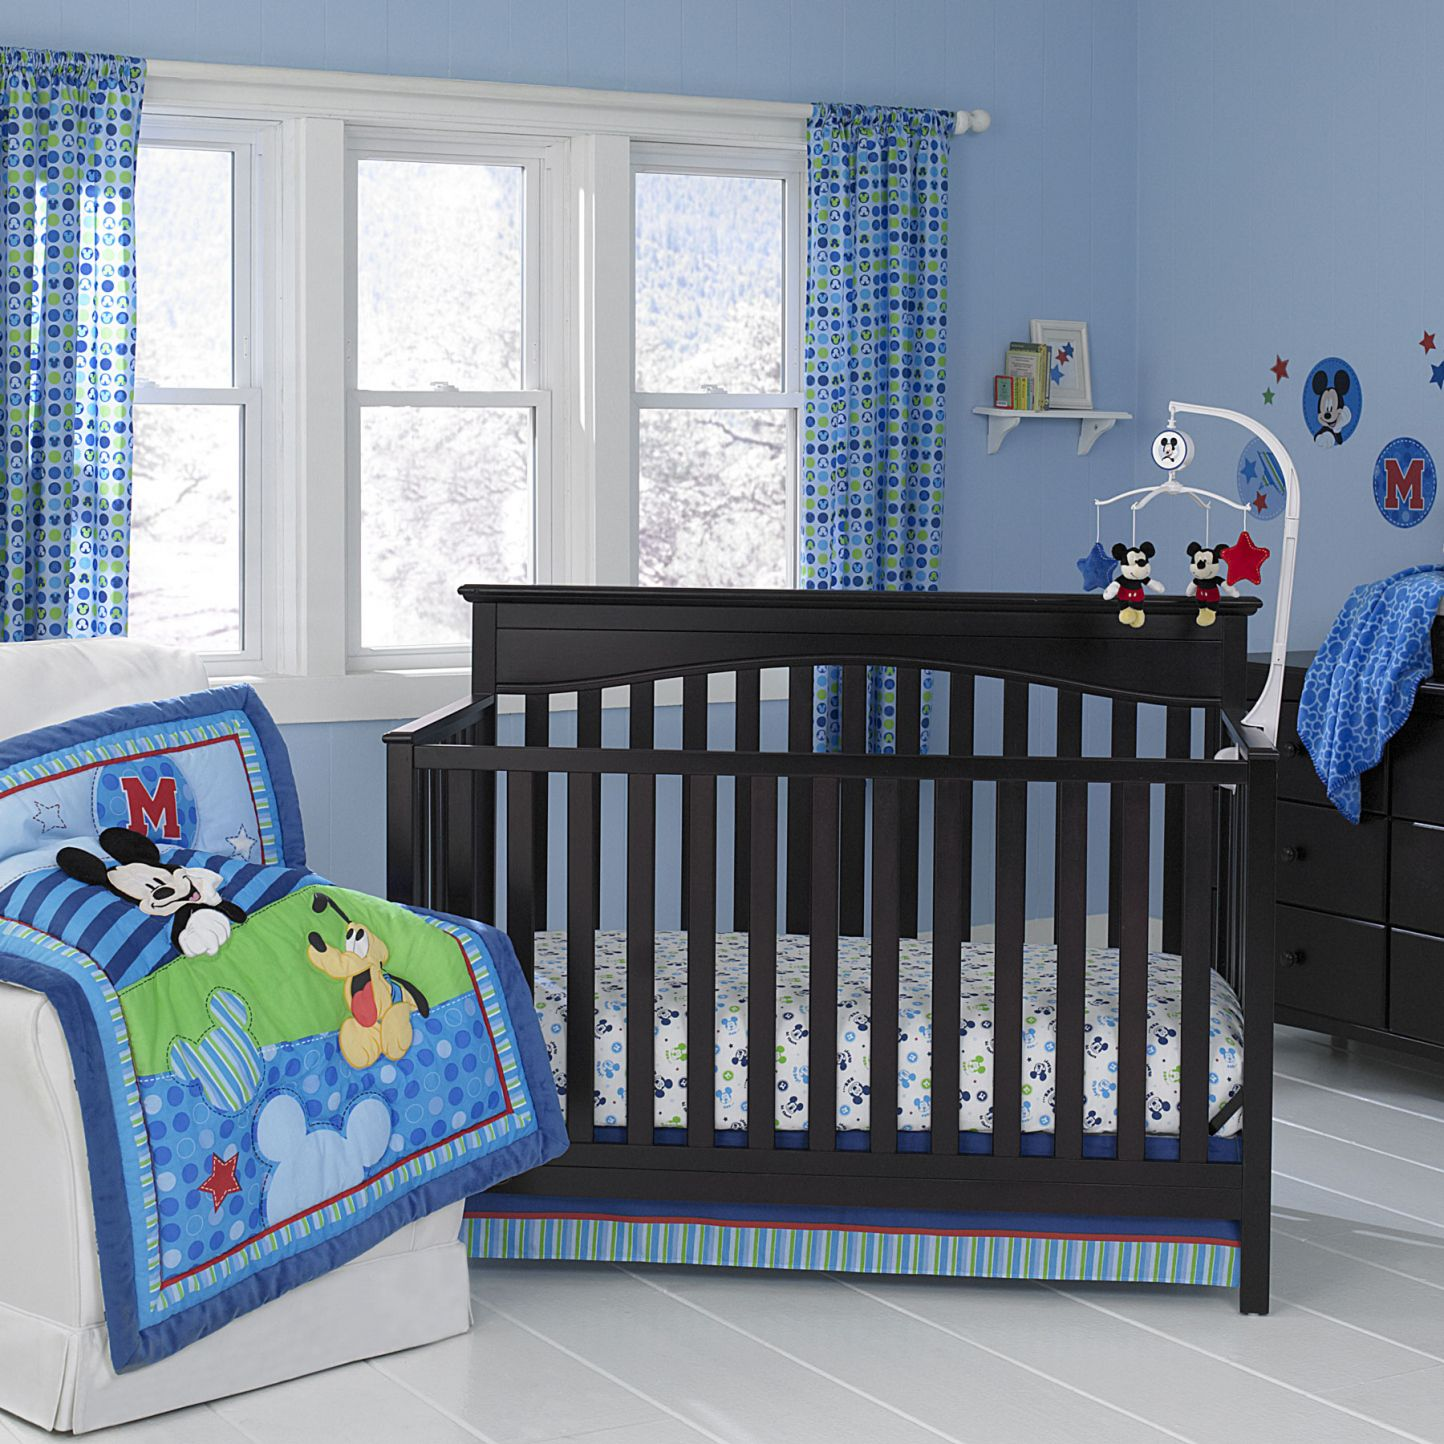 Mickey Mouse Baby Room Decor Top Rated Interior Paint Check More At Http Www Chulaniphotography